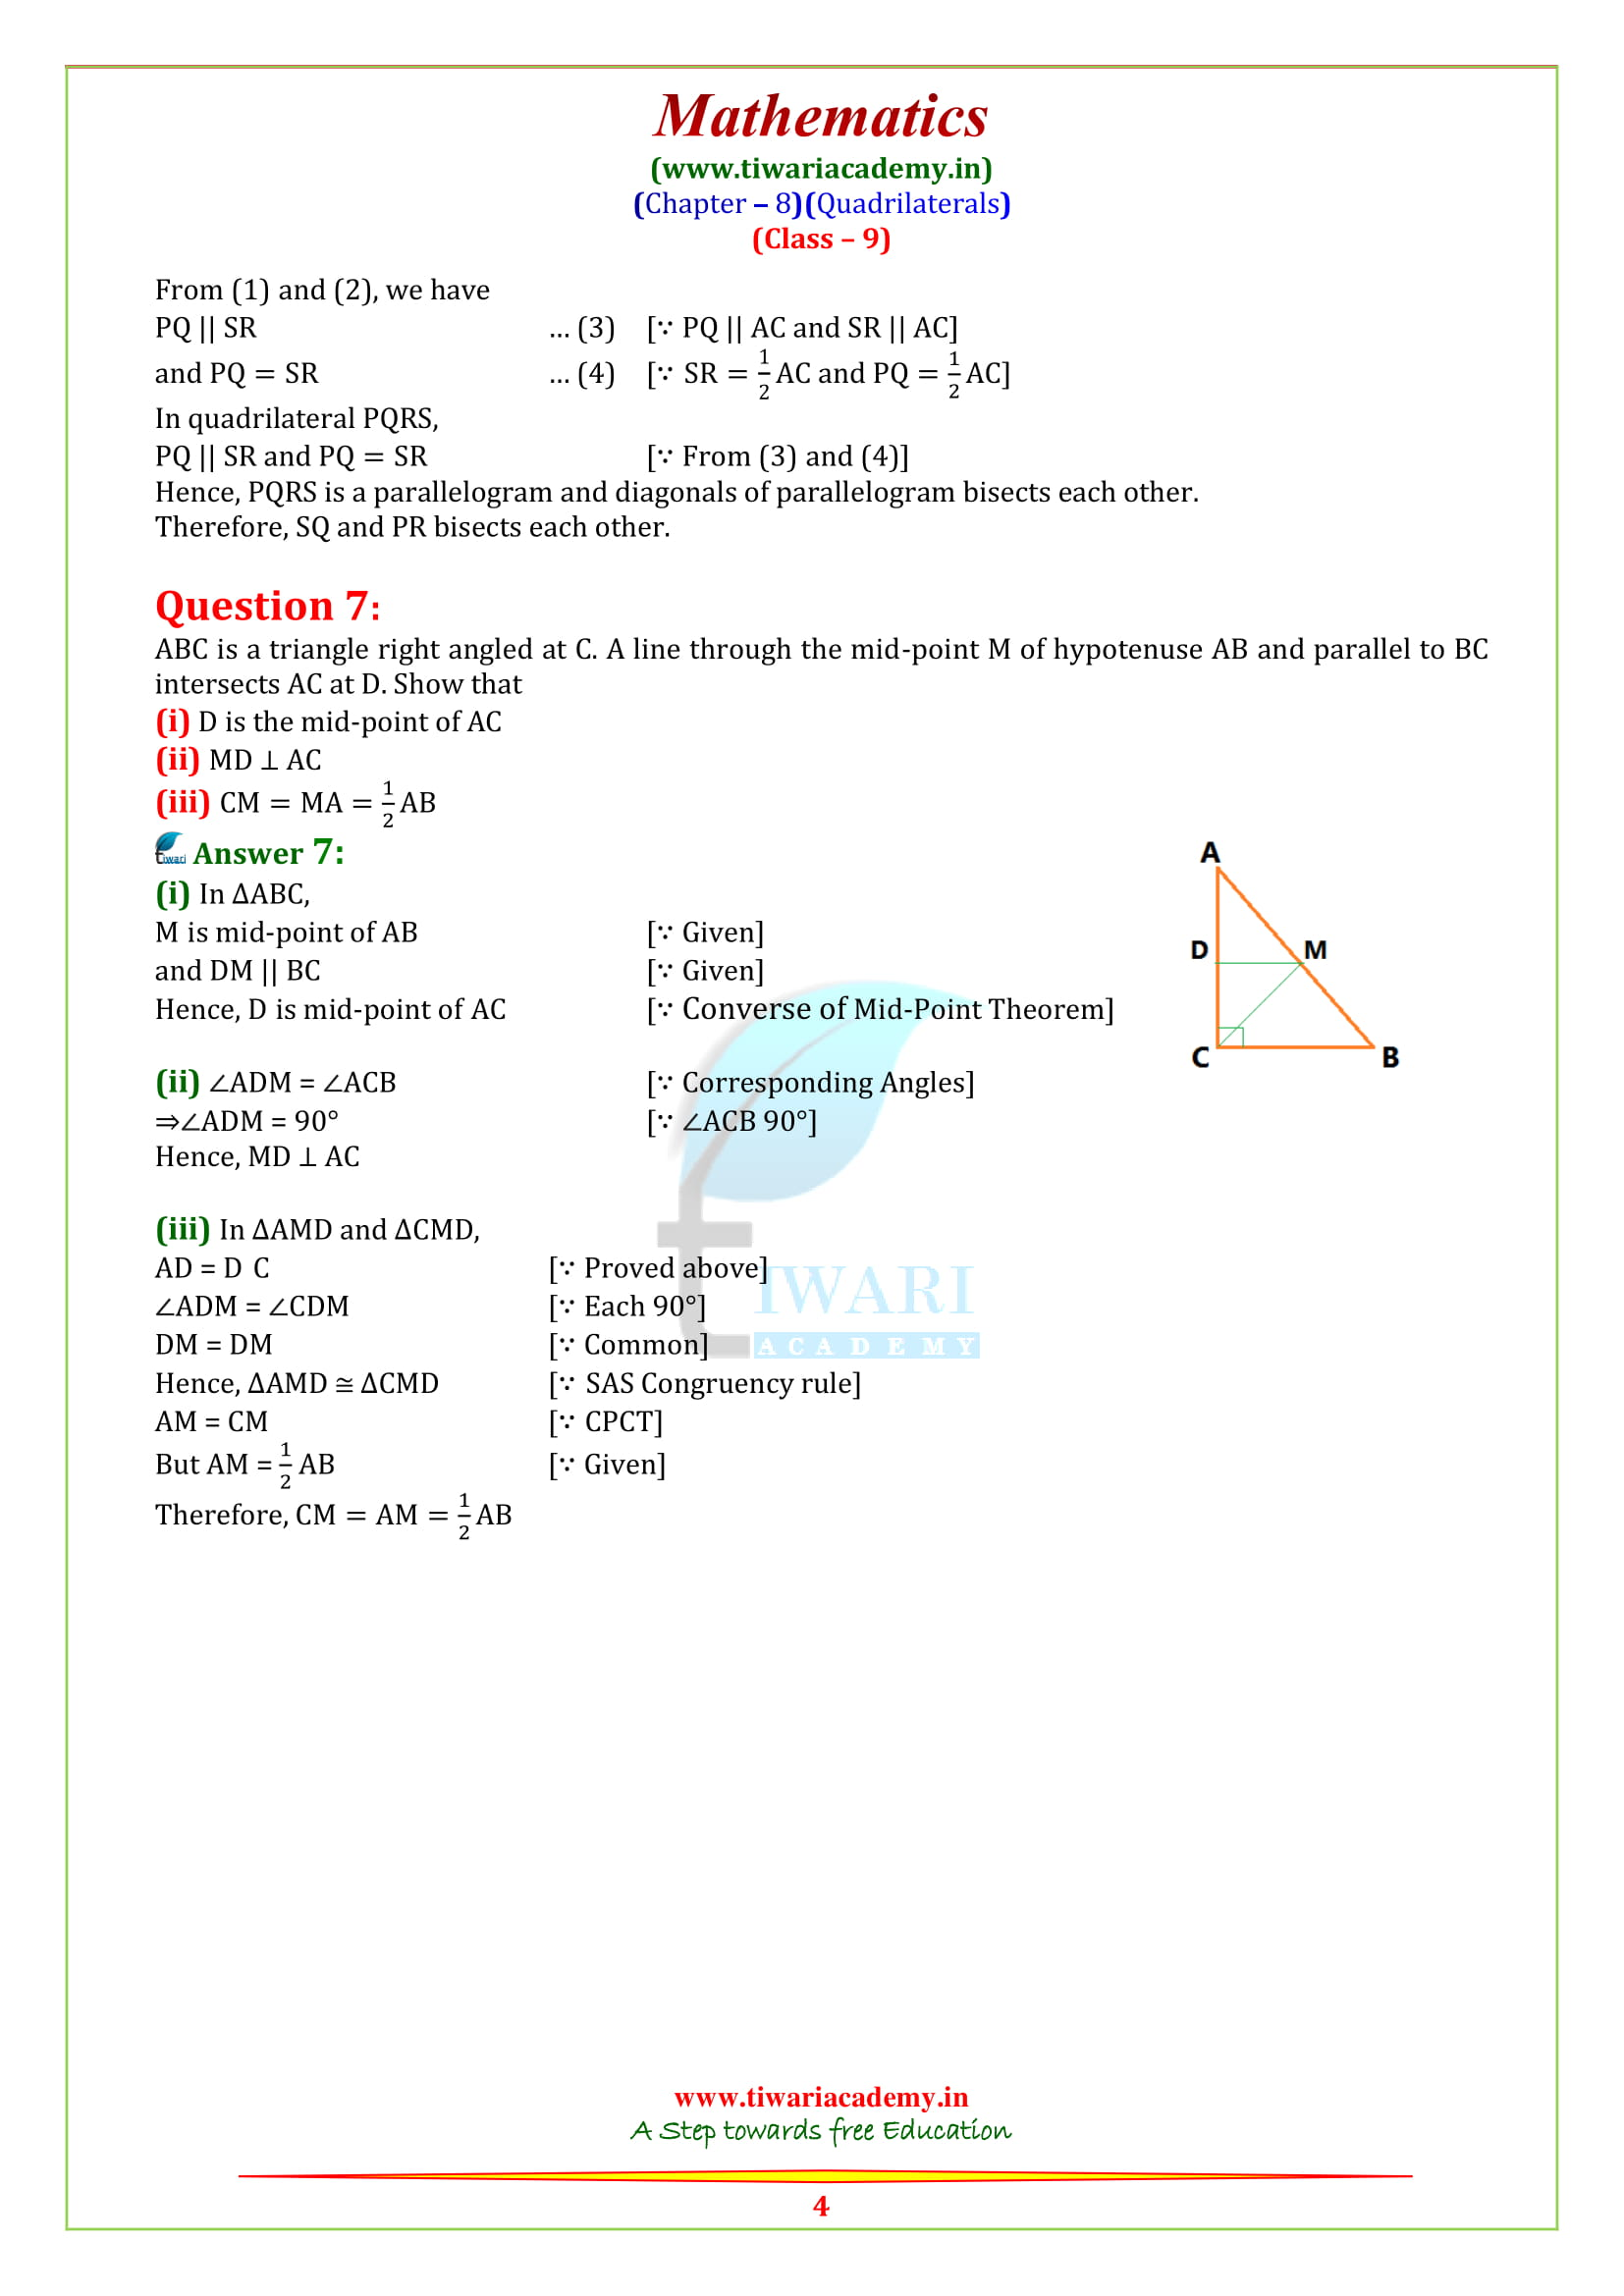 9 Maths exercise 8.2 sols simplified form